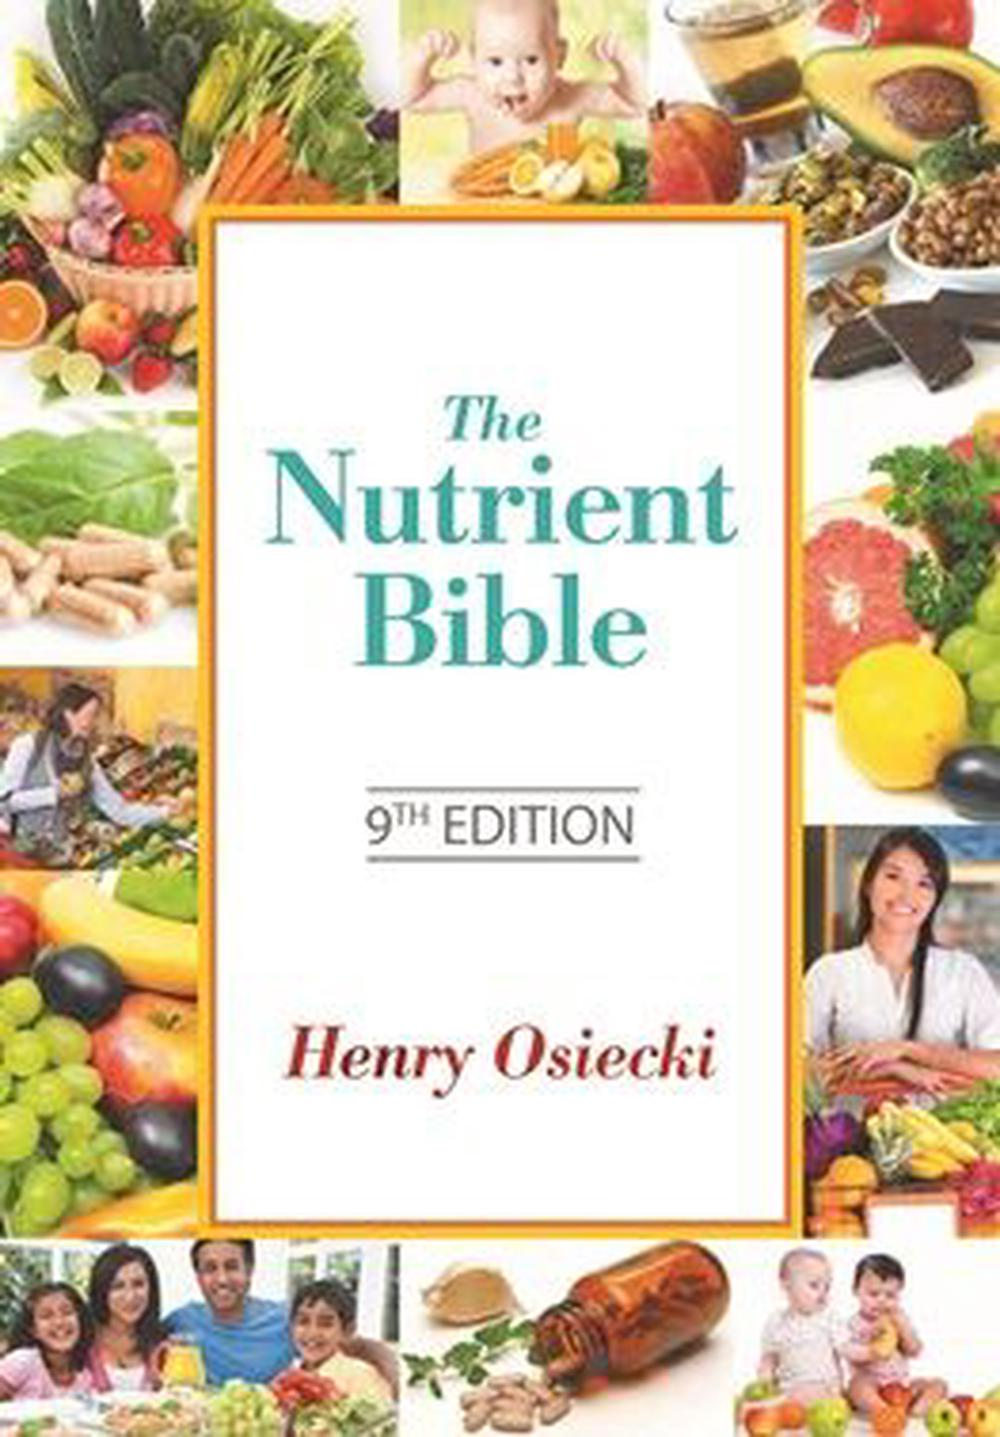 The Nutrient Bible 9th edition